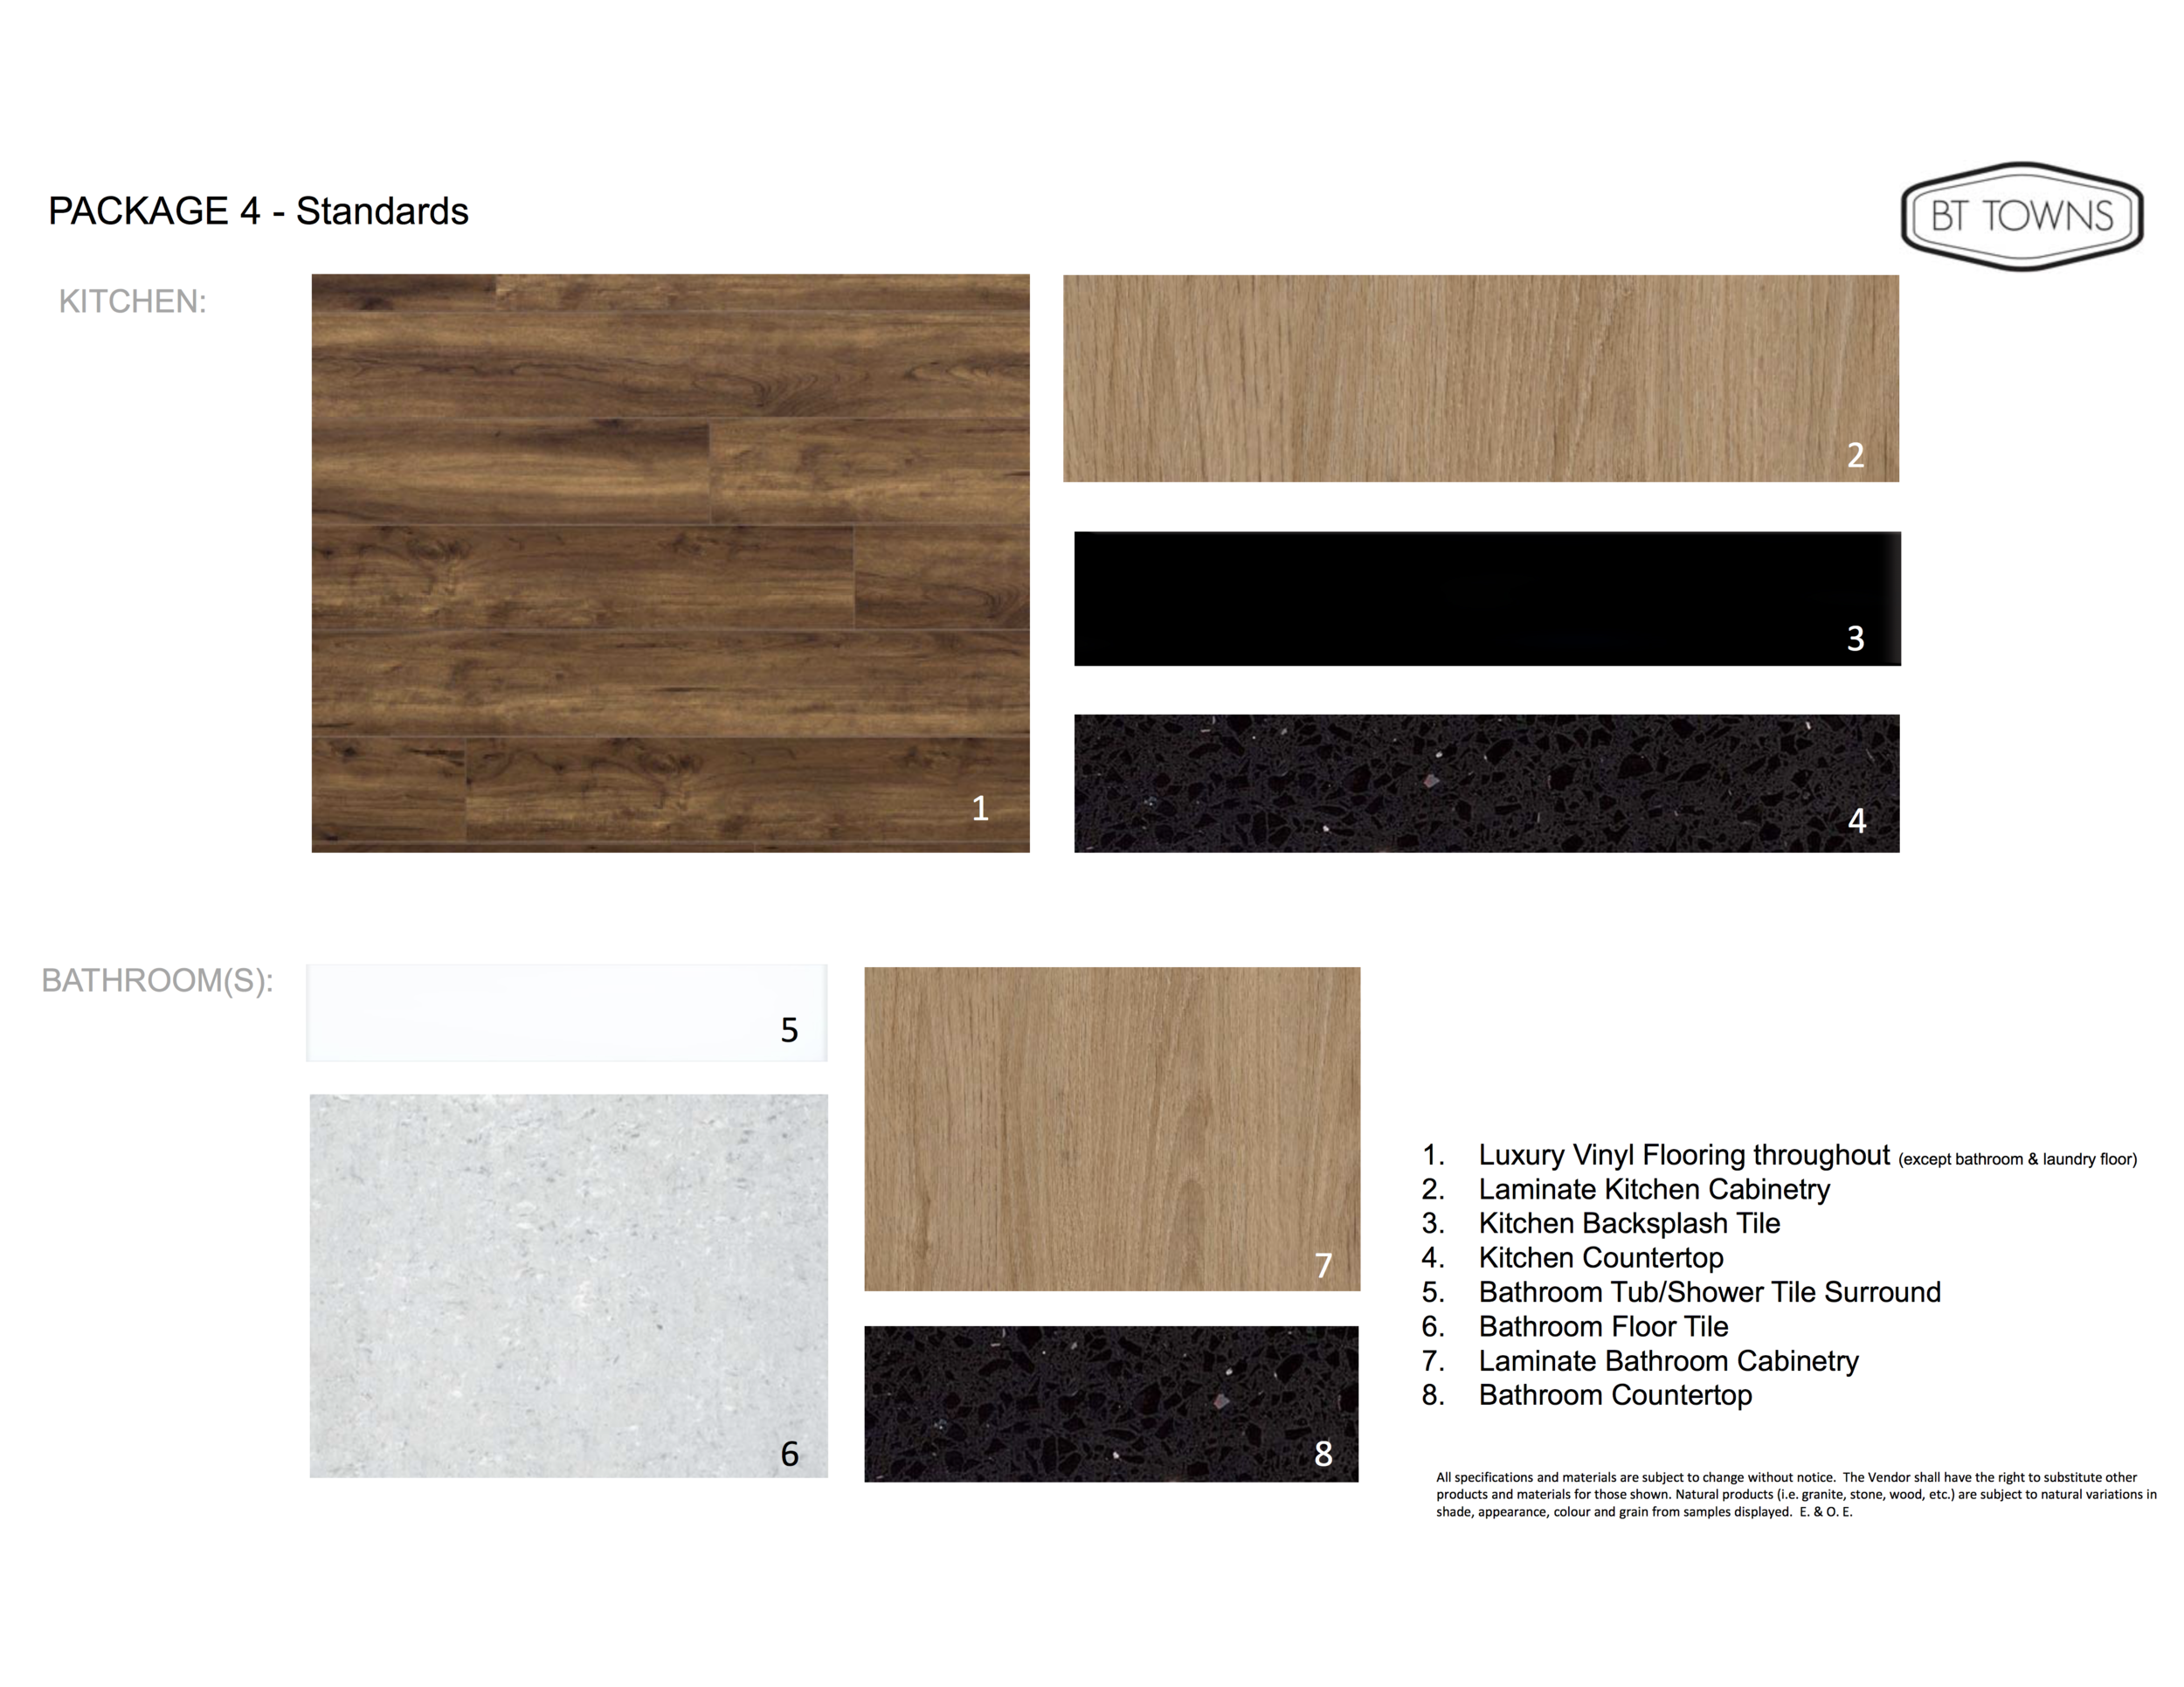 Standard Finishes and Features - Package 4